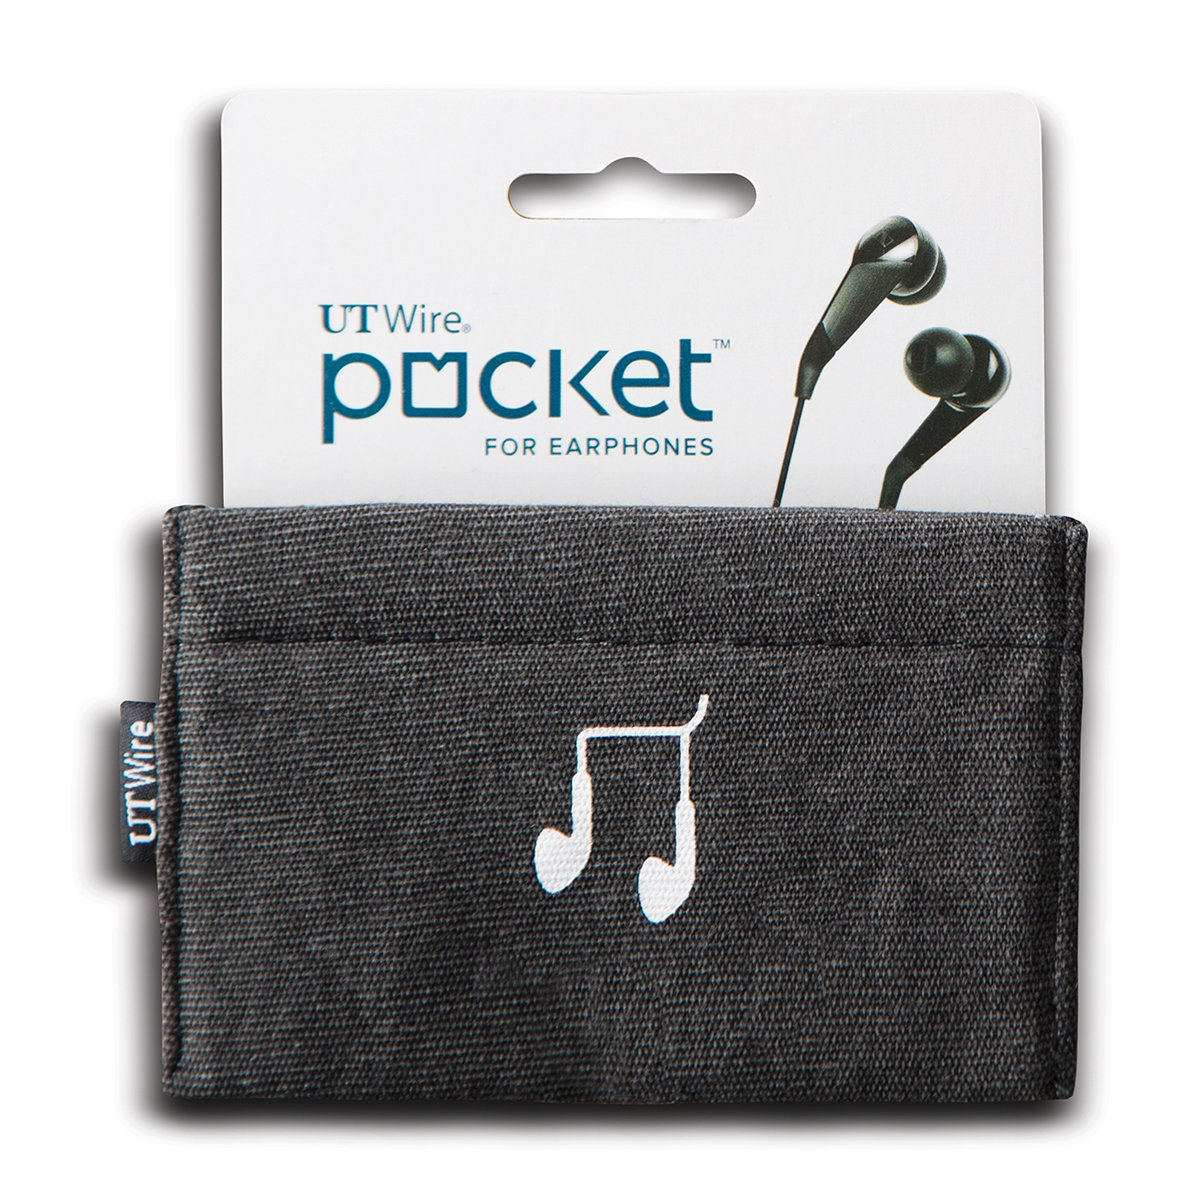 Ut Wire Utw Pk01 Bk Pocket Earphone Case Pouch, Black by Ut Wire